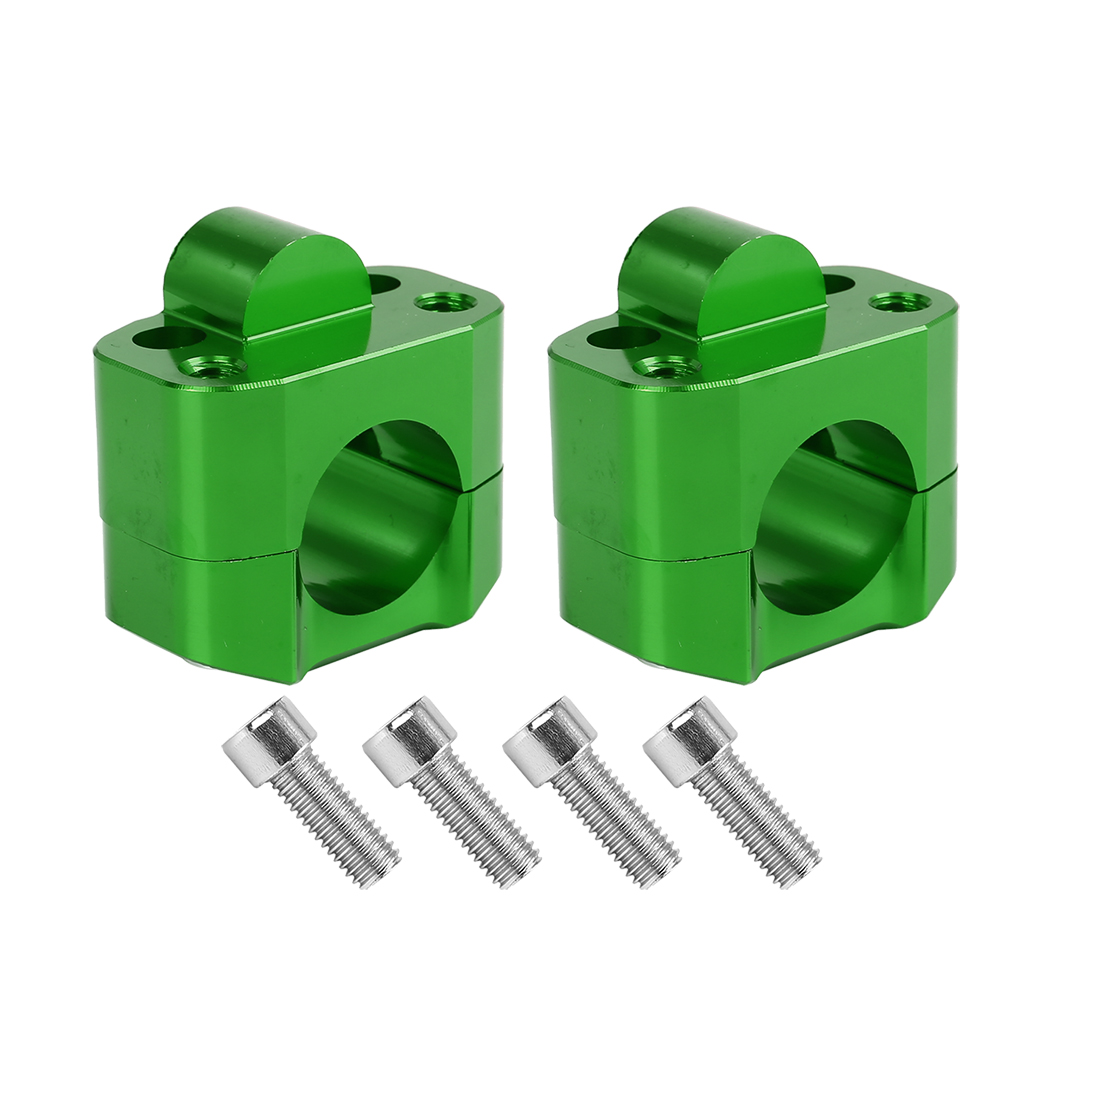 2Pcs Green Motorcycle Universal Fat Bar Handlebar Mount Clamps Fit 28mm Handle